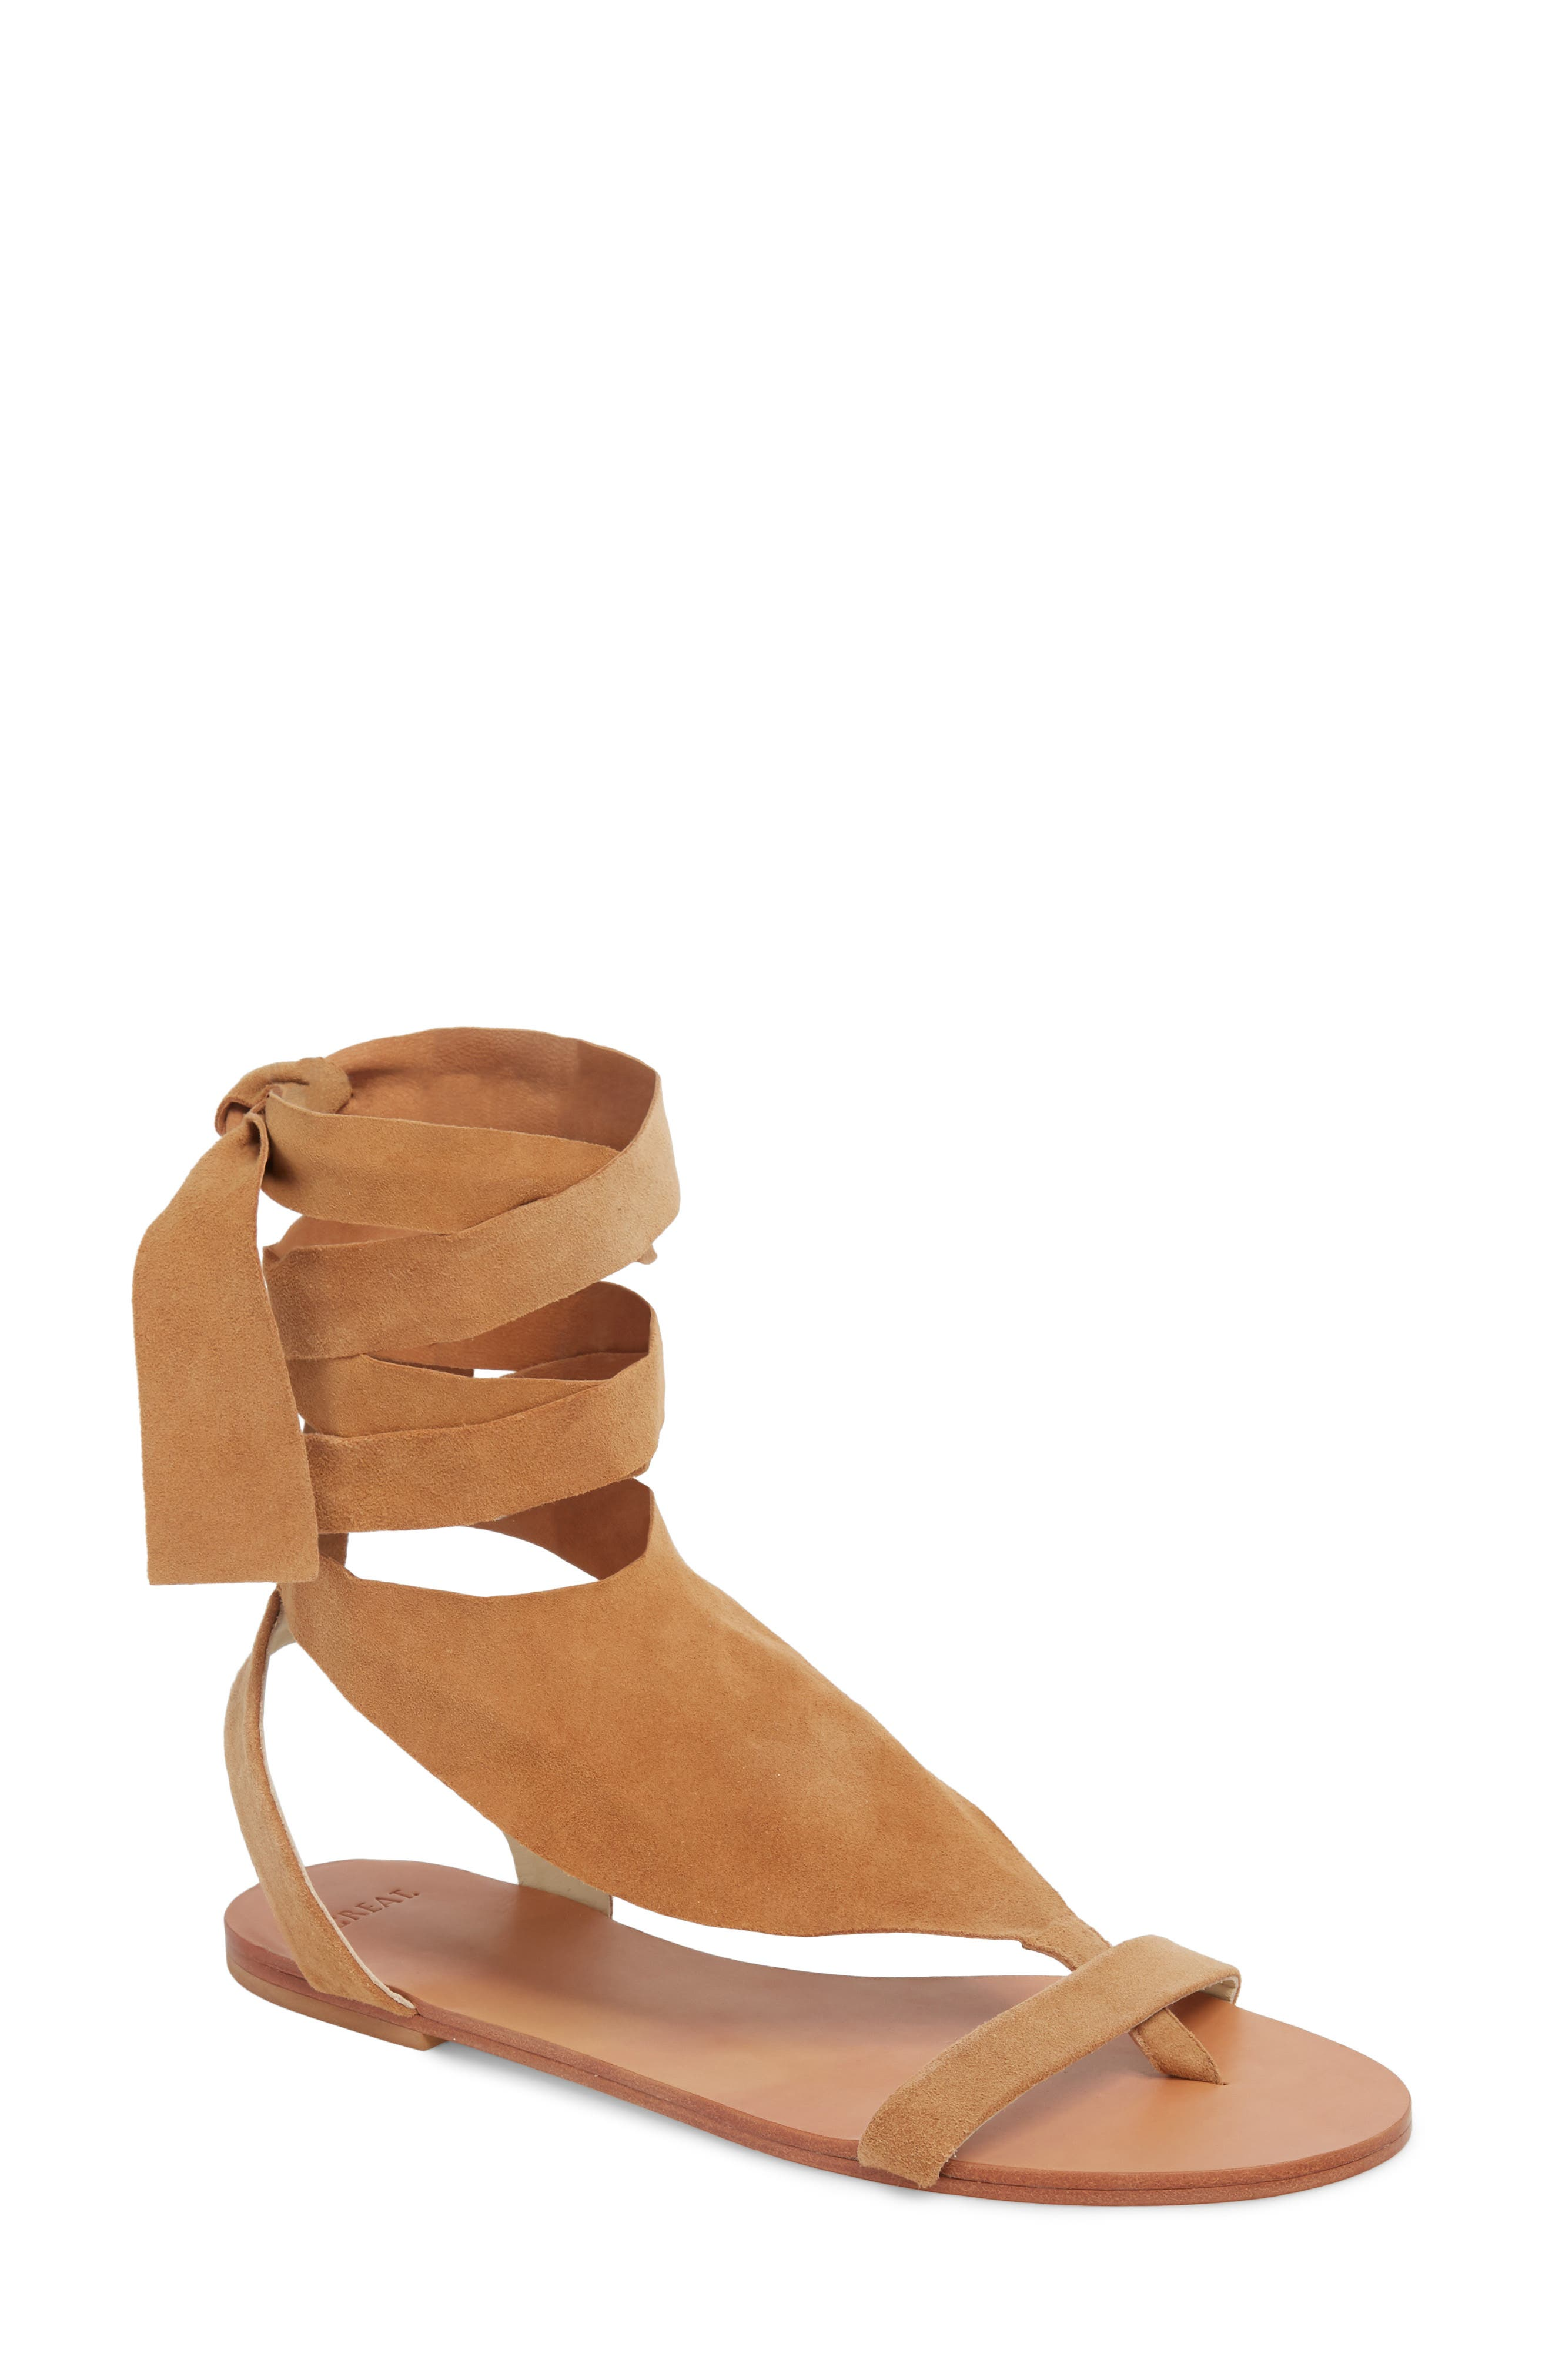 The Great. Scarf Tie Sandal